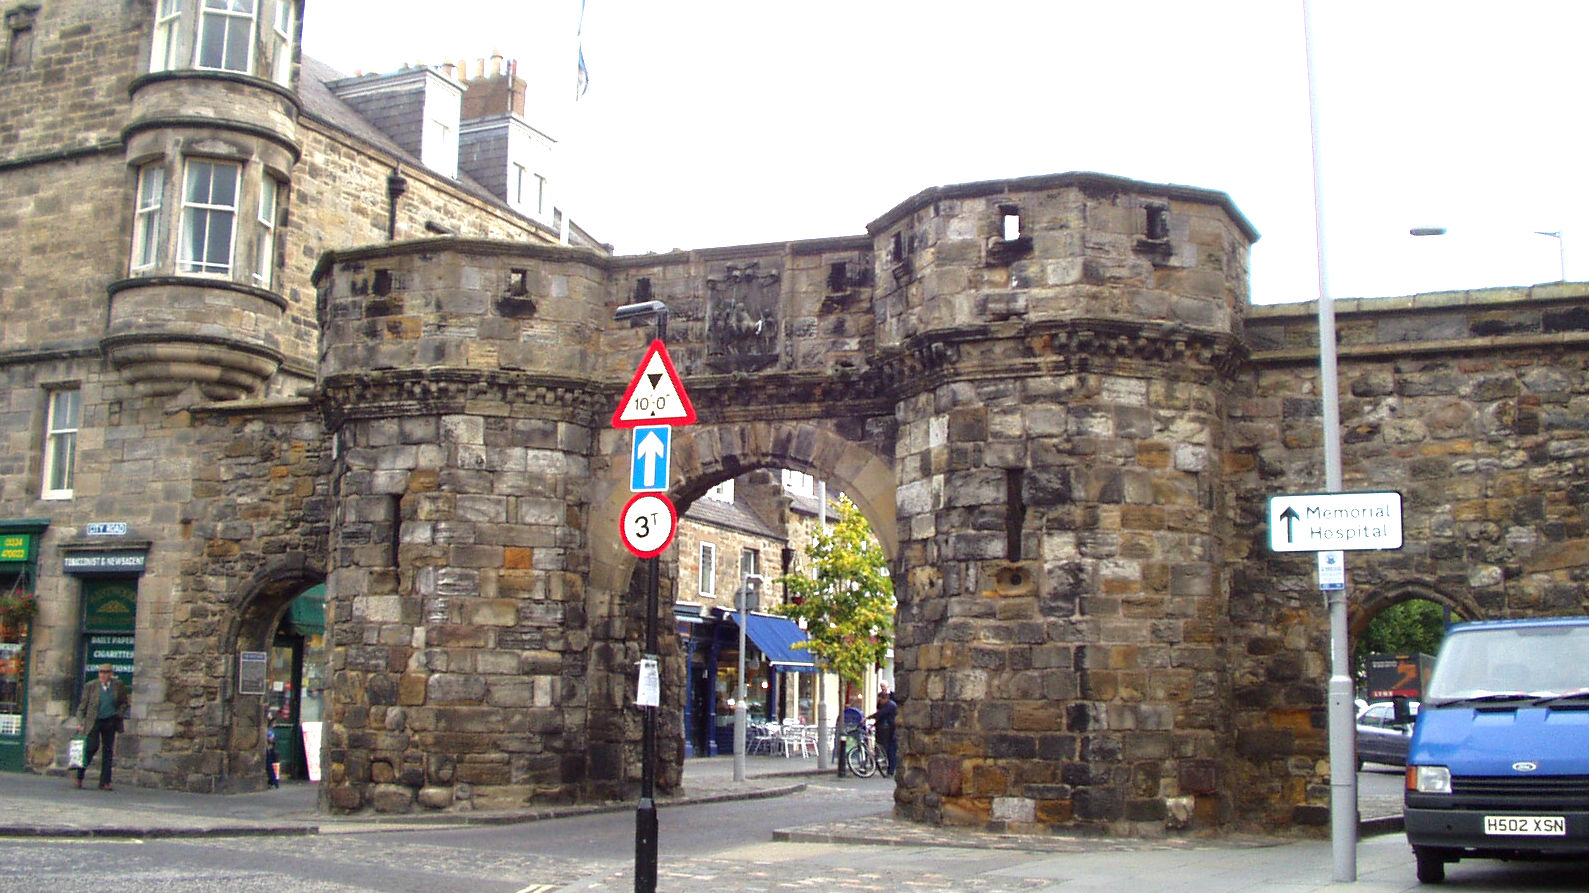 The West Gate of St. Andrews. (Credit: Jay Lloyd)